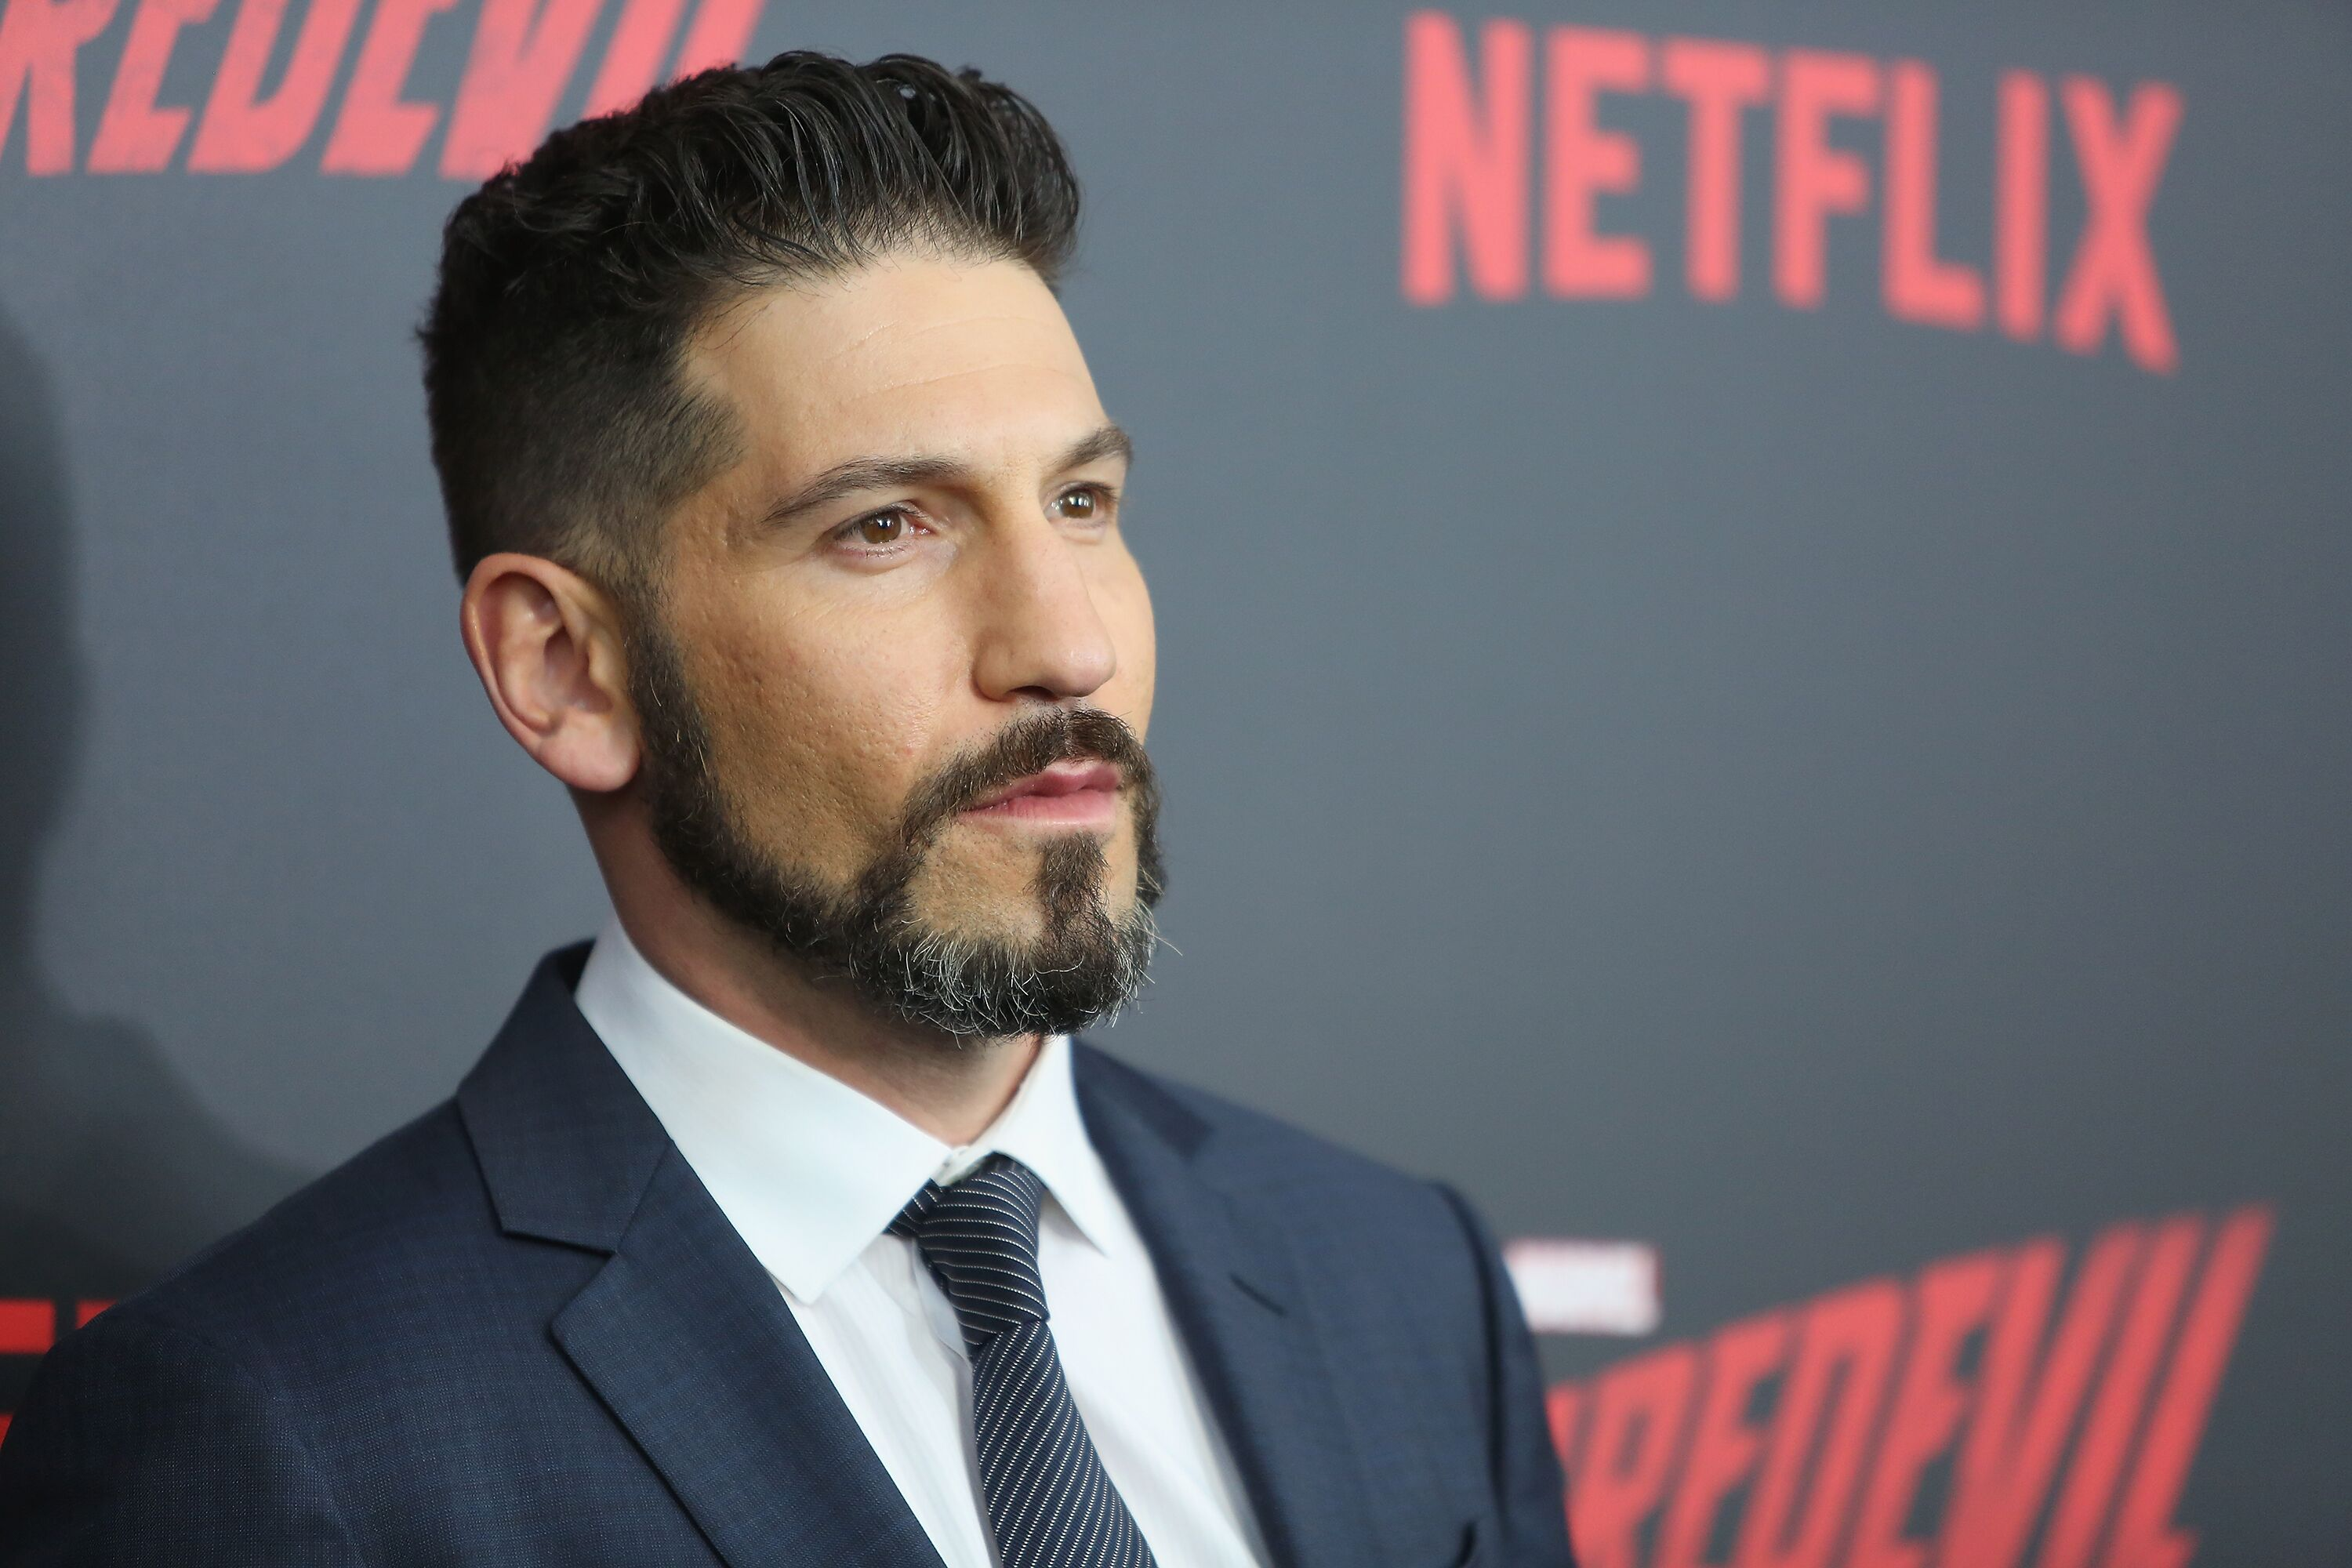 Jon Bernthal teases The Punisher series release date